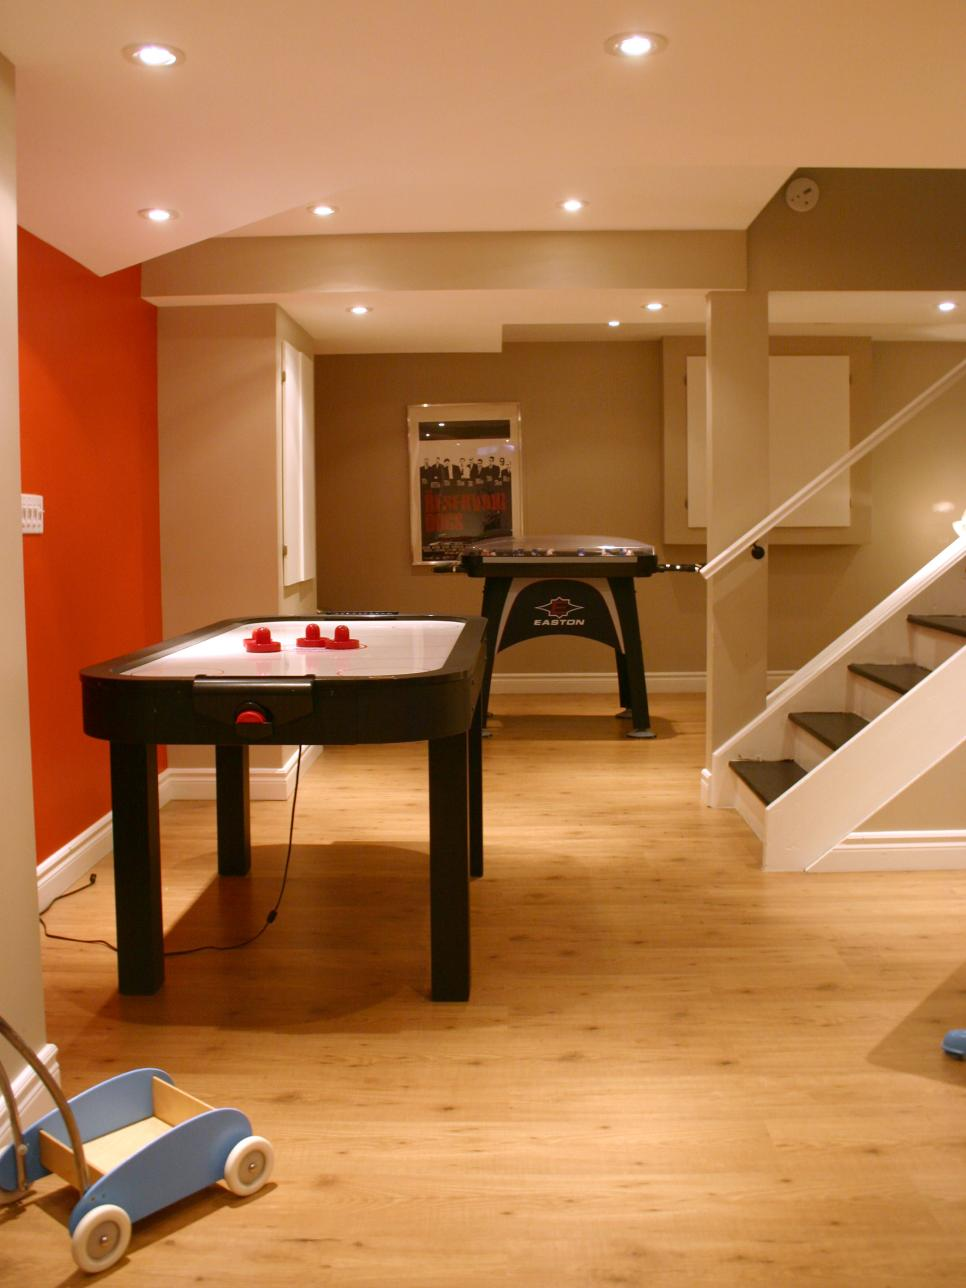 Basement design ideas hgtv Basement game room ideas